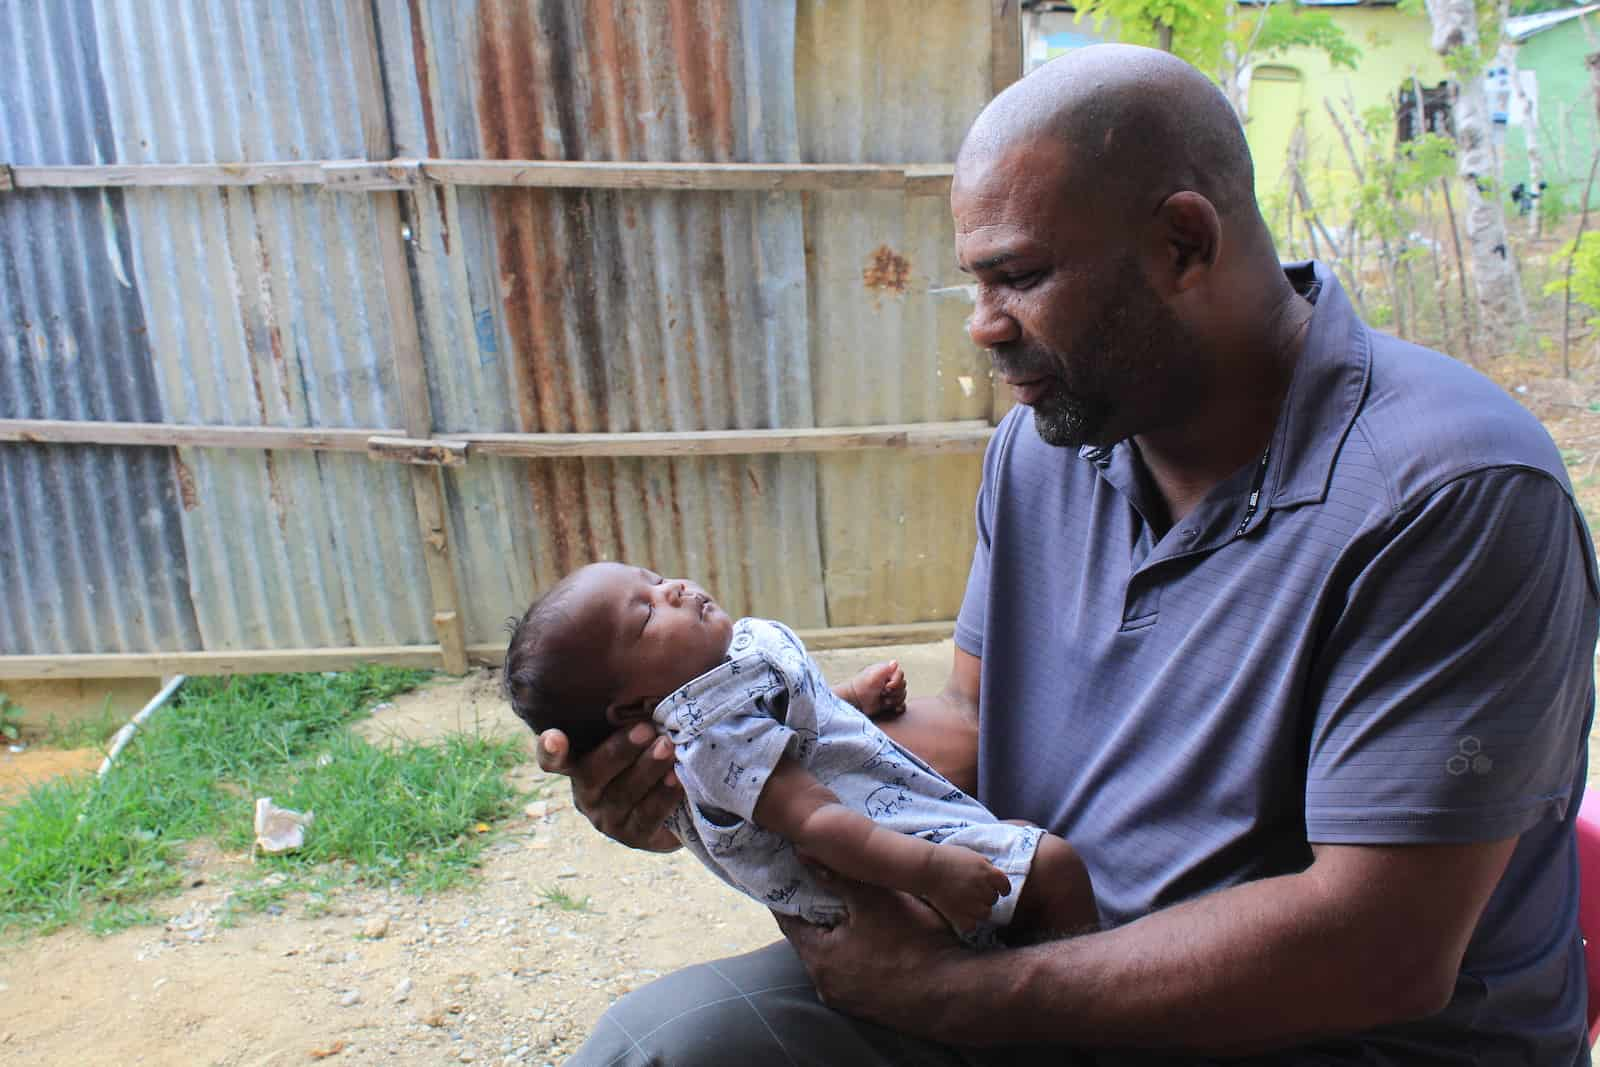 A man holds a newborn baby